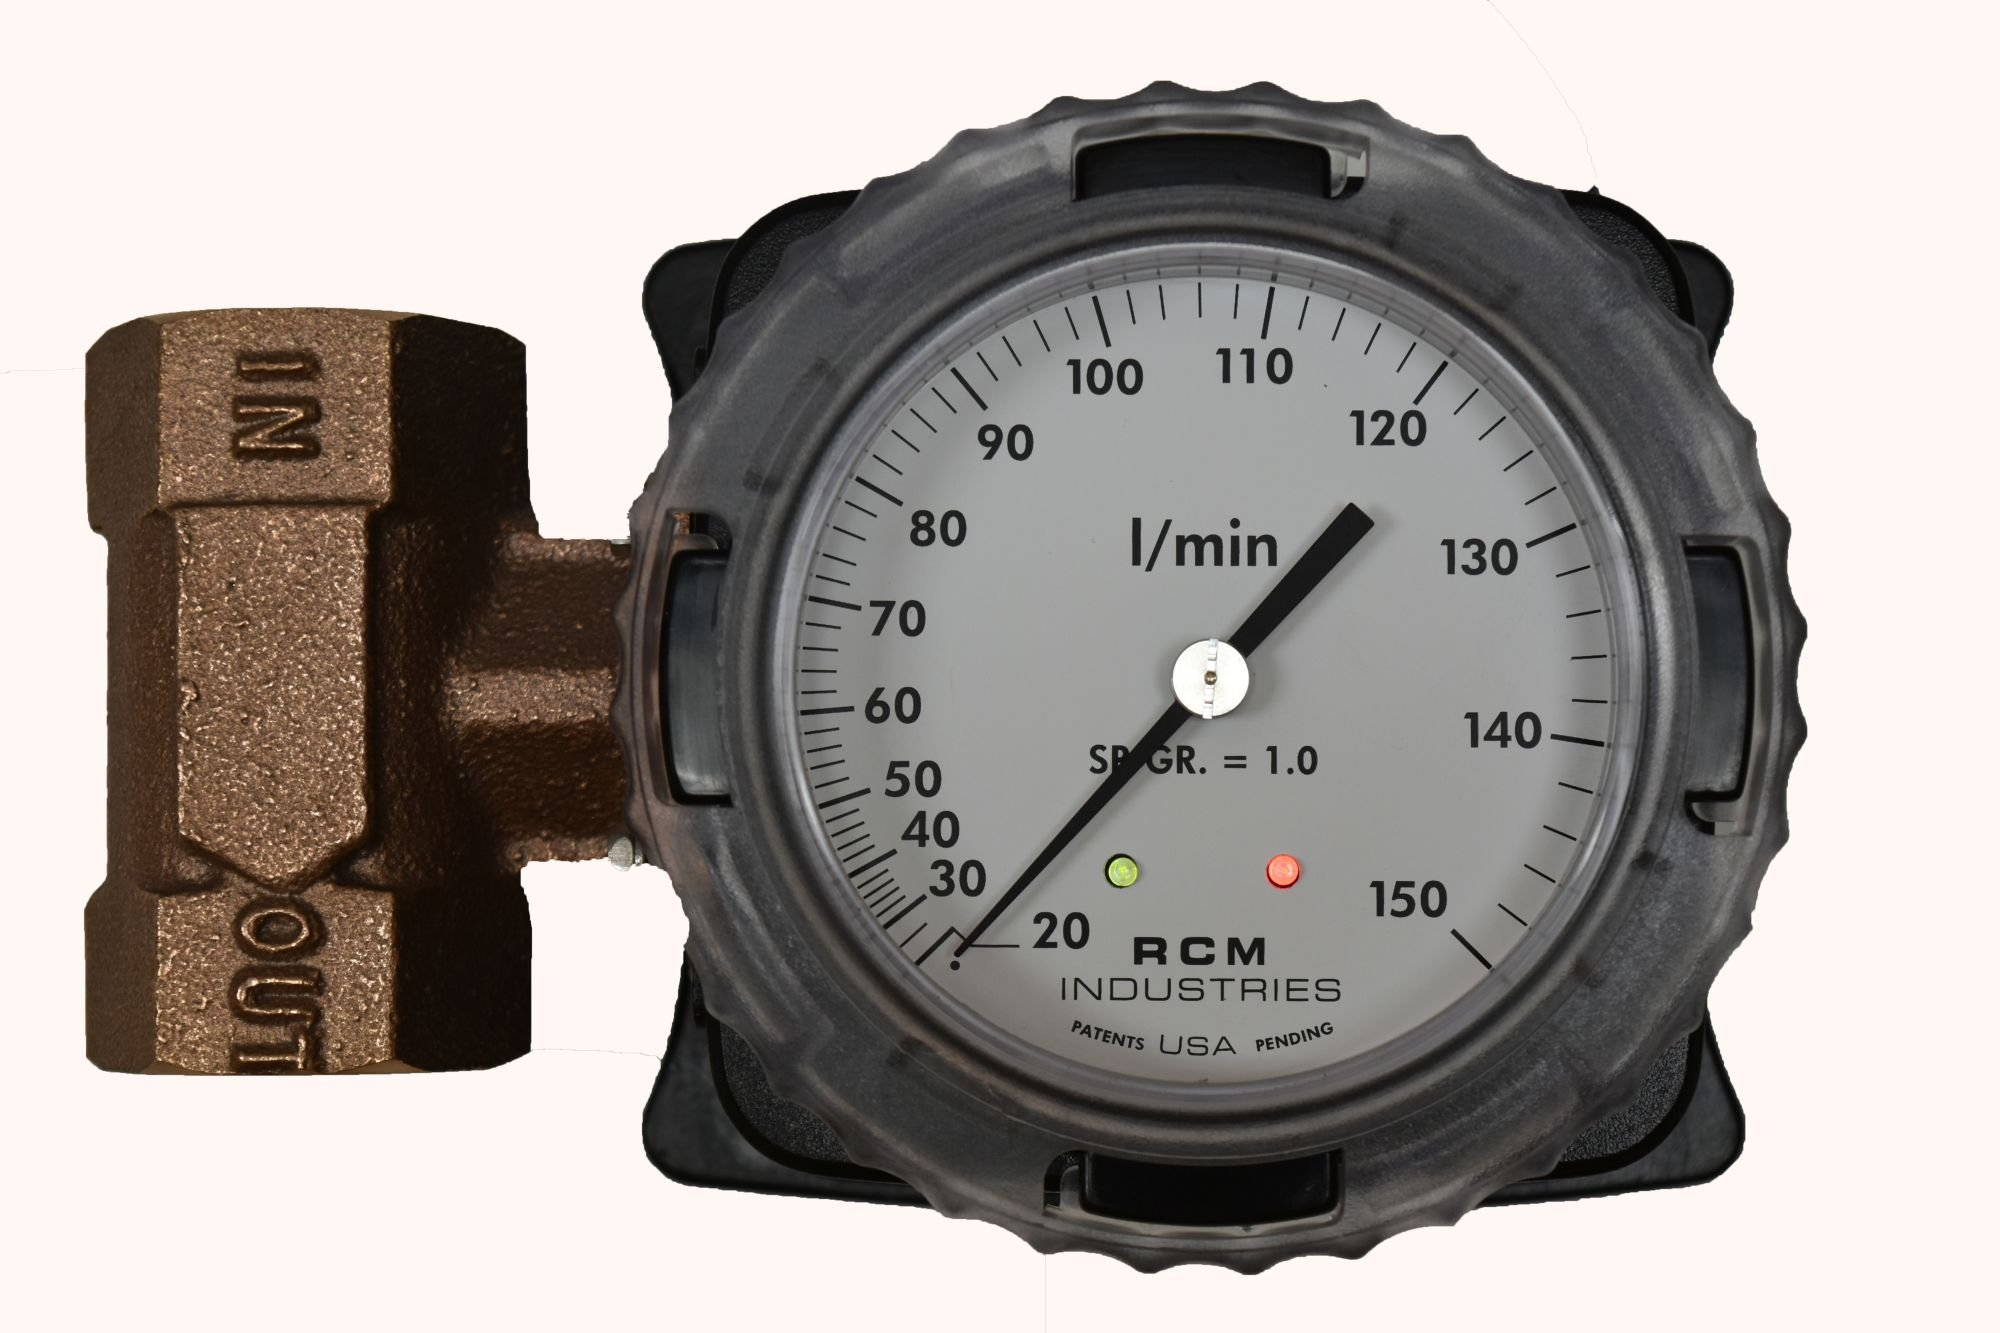 Differential pressure flow switch flow meter for hazardous location